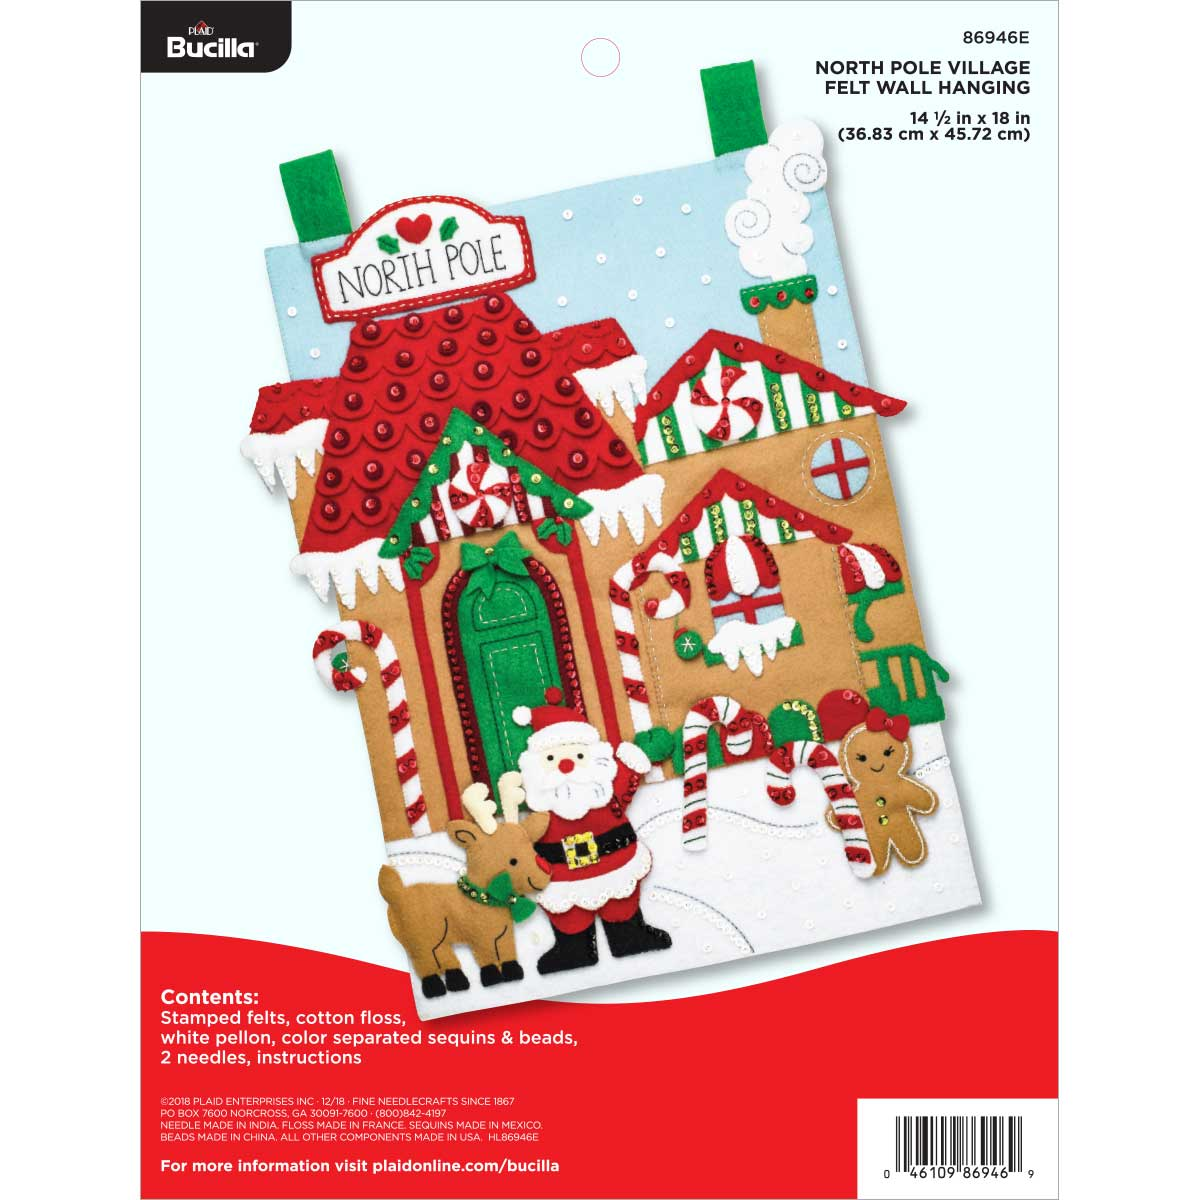 Bucilla ® Seasonal - Felt - Home Decor - North Pole Village Wall Hanging